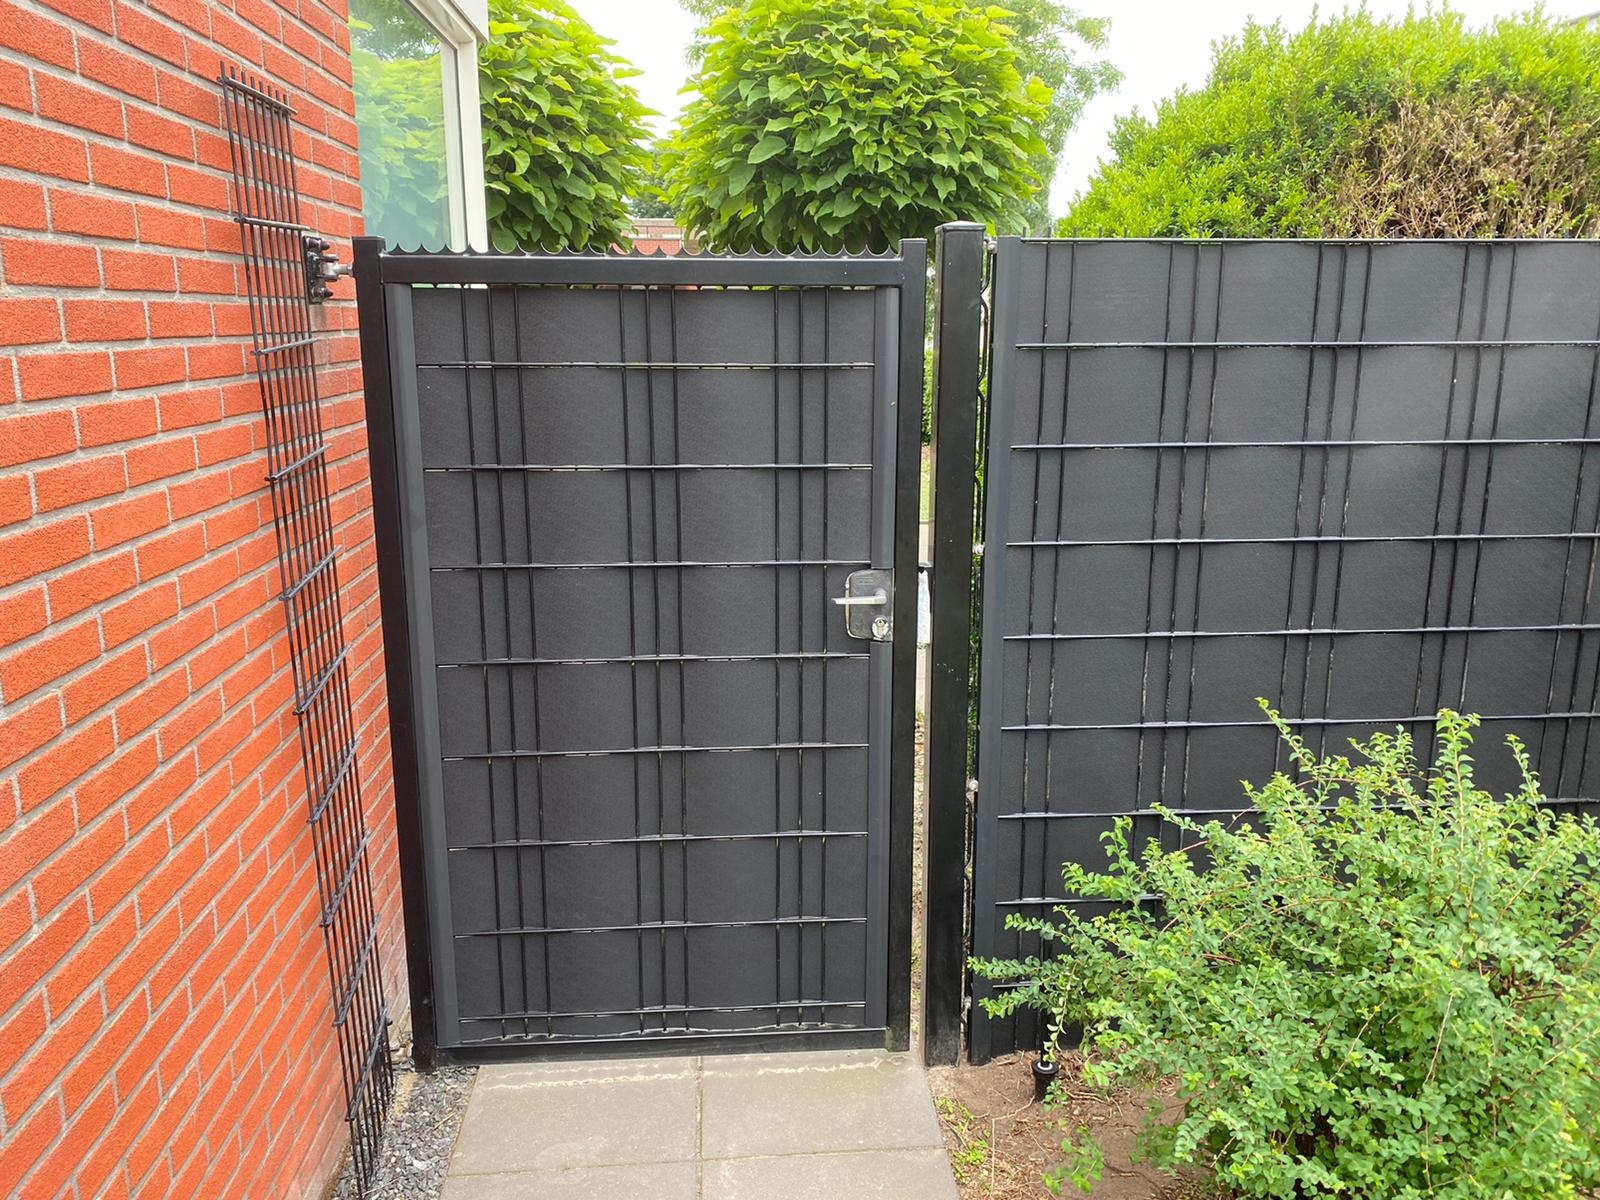 Gipea Easy To Fix Optimal Visibility Protection For Gate & Fence Afhaal Prijs Gipea master  Fix - 8/6/8